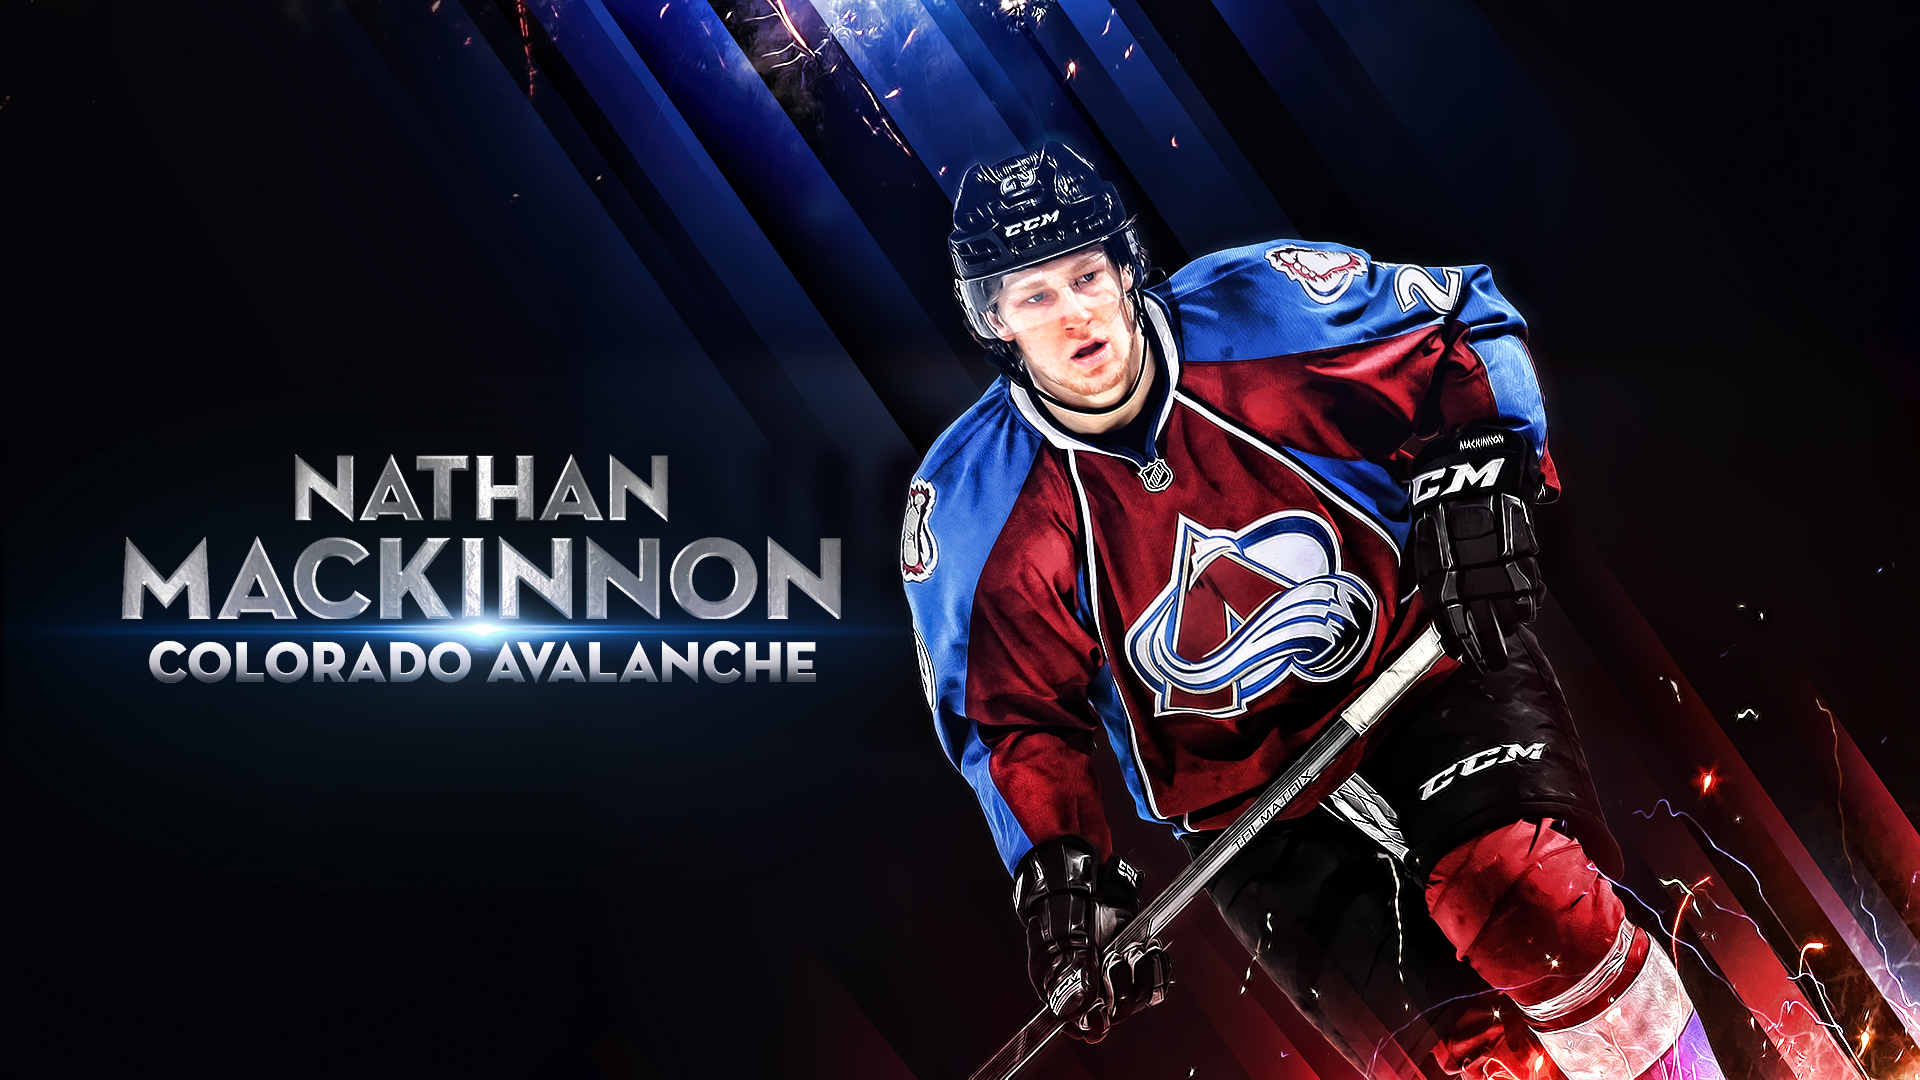 1920x1080 - Colorado Avalanche Wallpapers 28